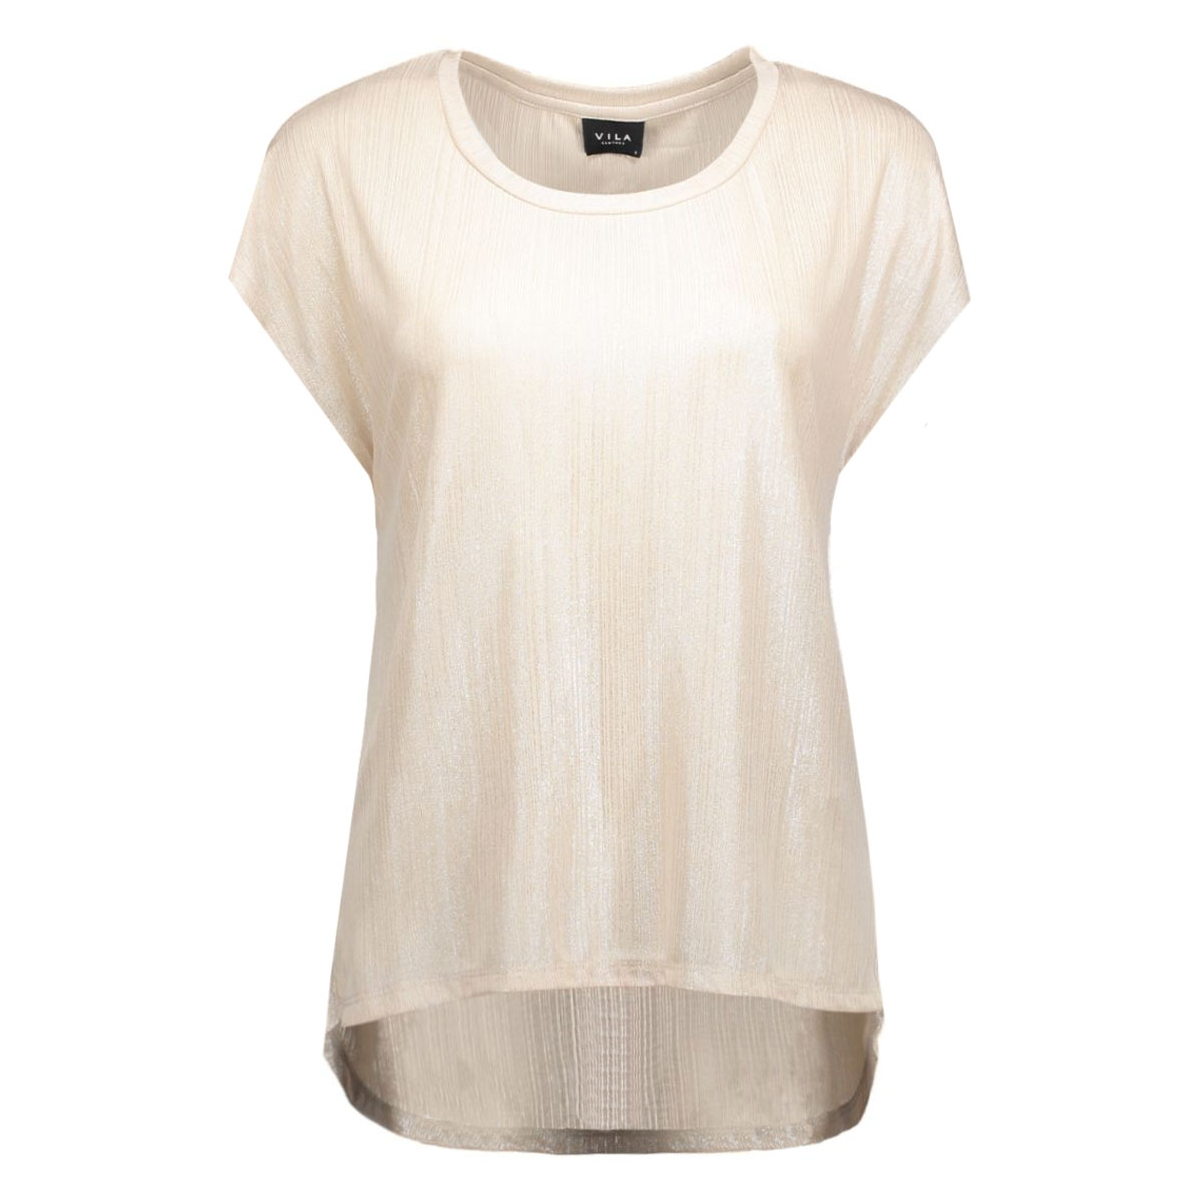 vipol s/s top 14037540 vila t-shirt frosted almond